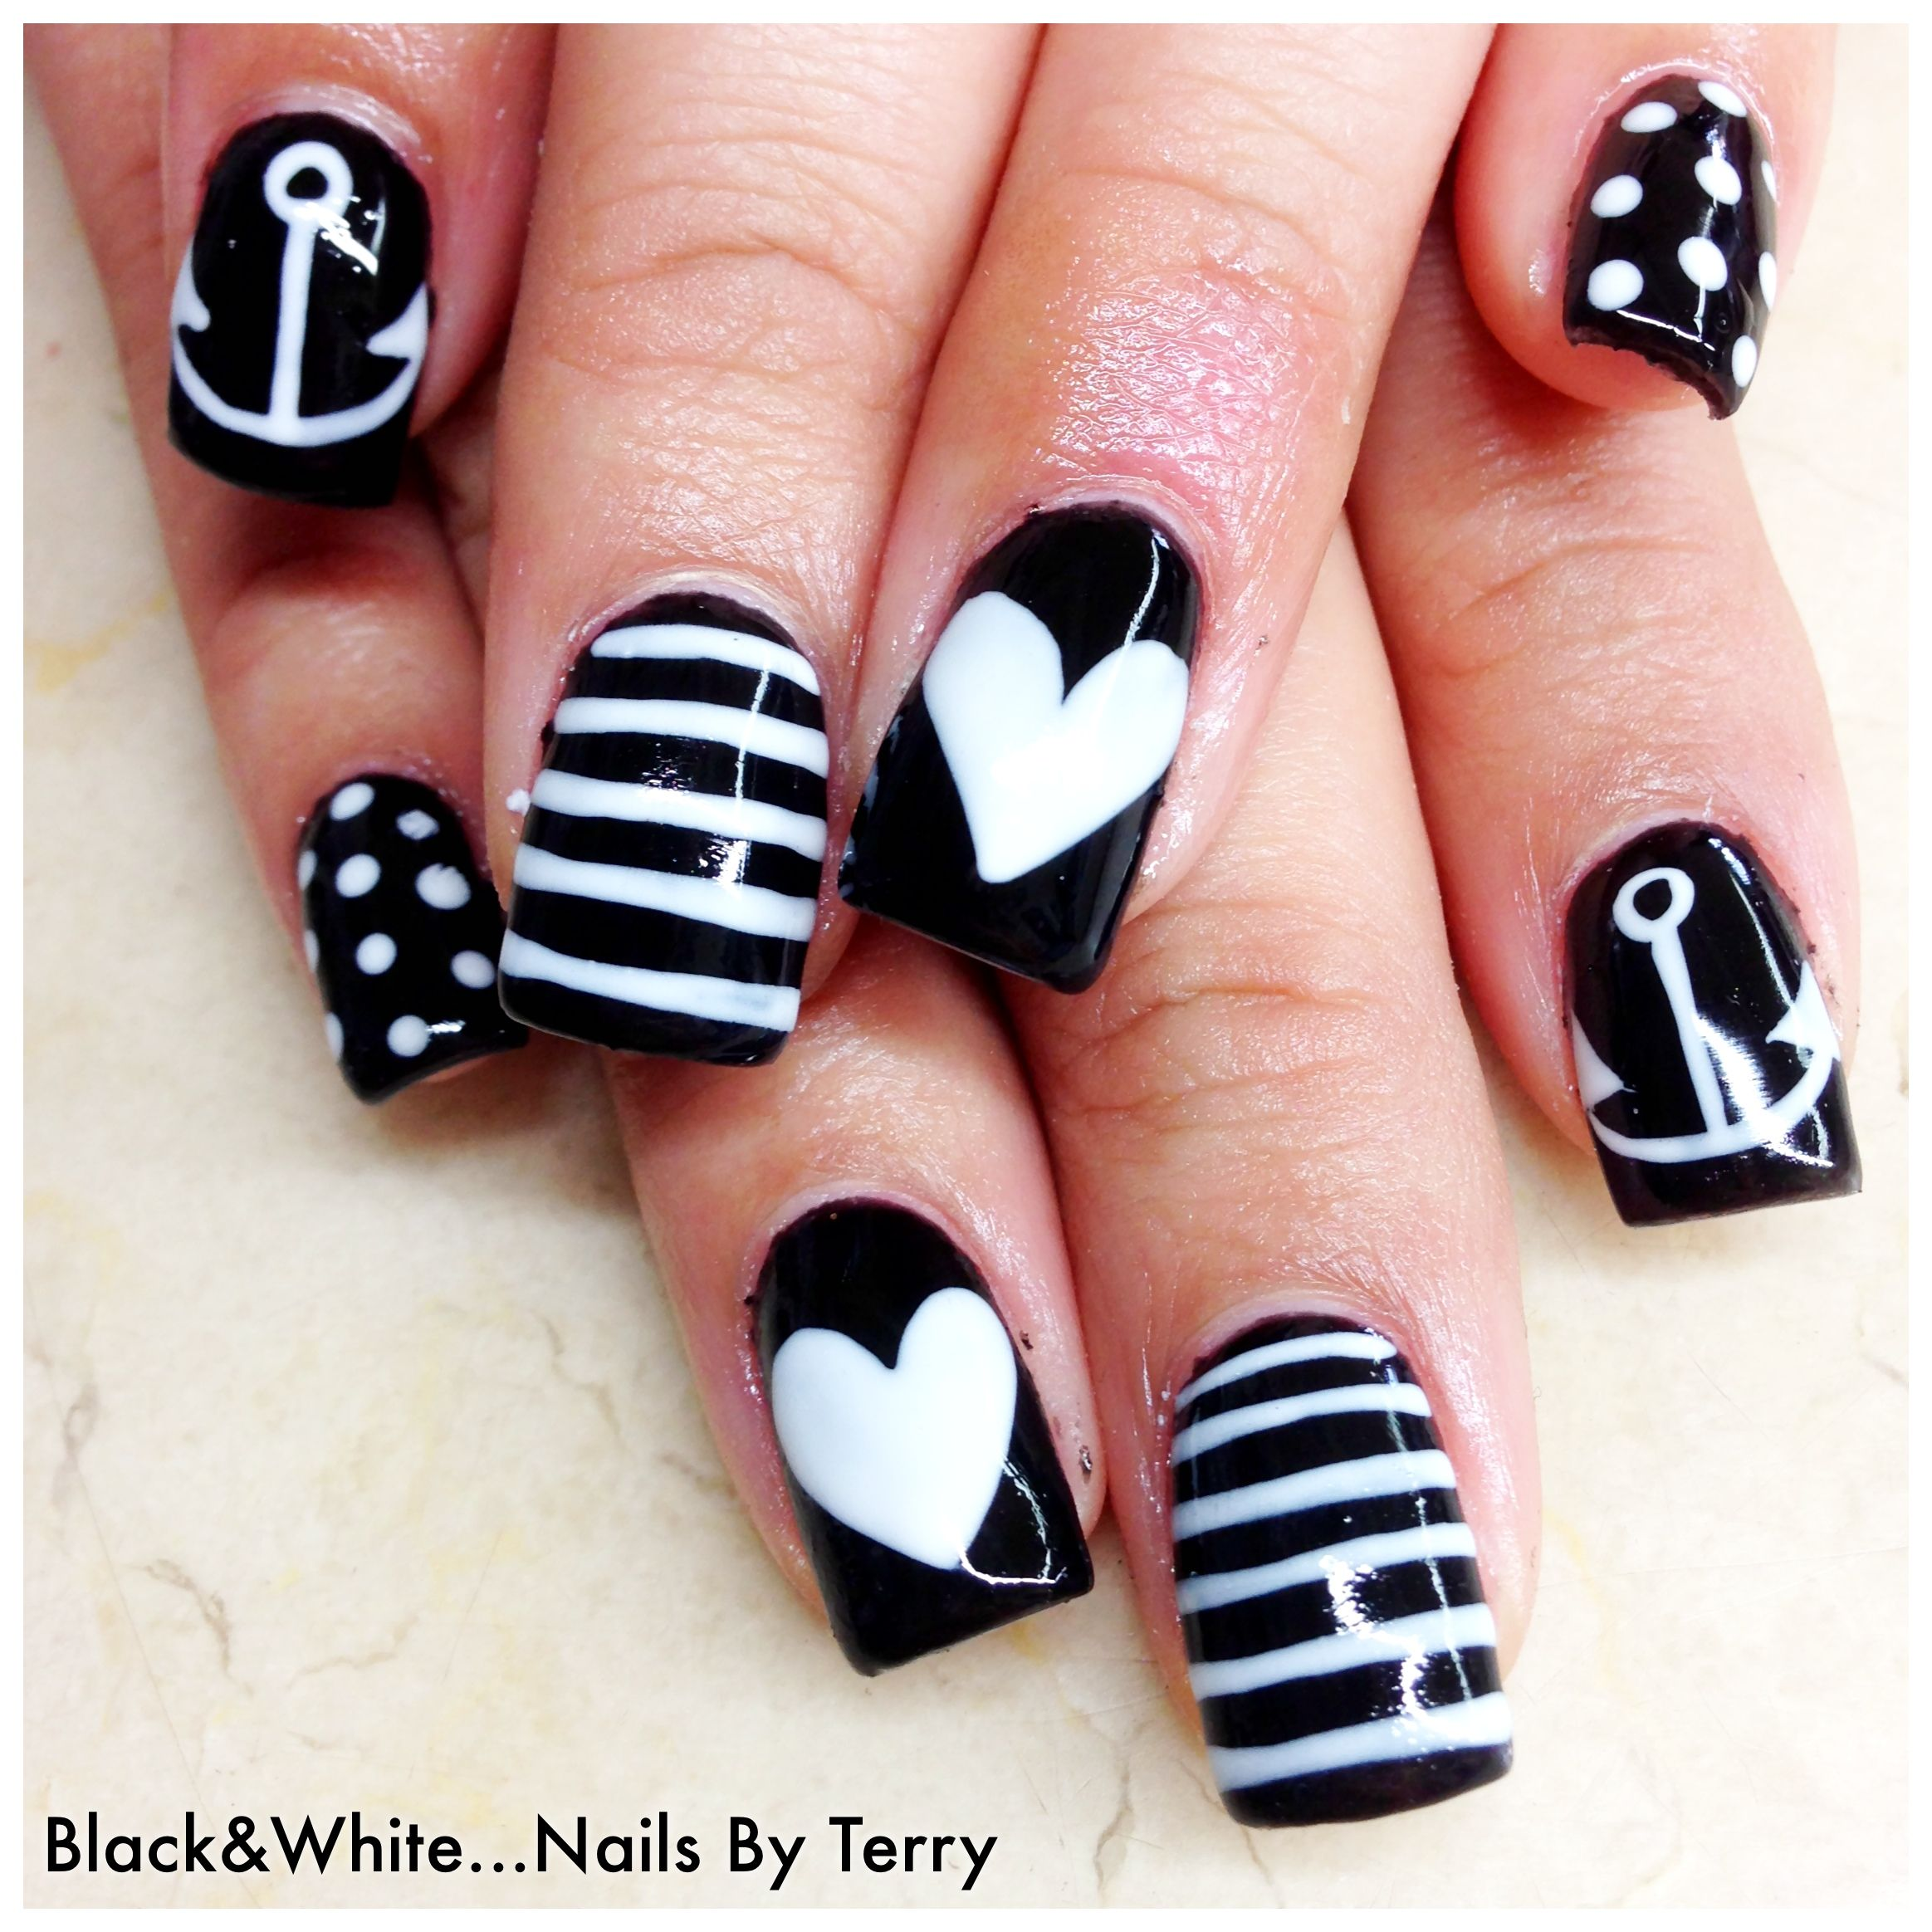 Black And White Gel Nails By Terry